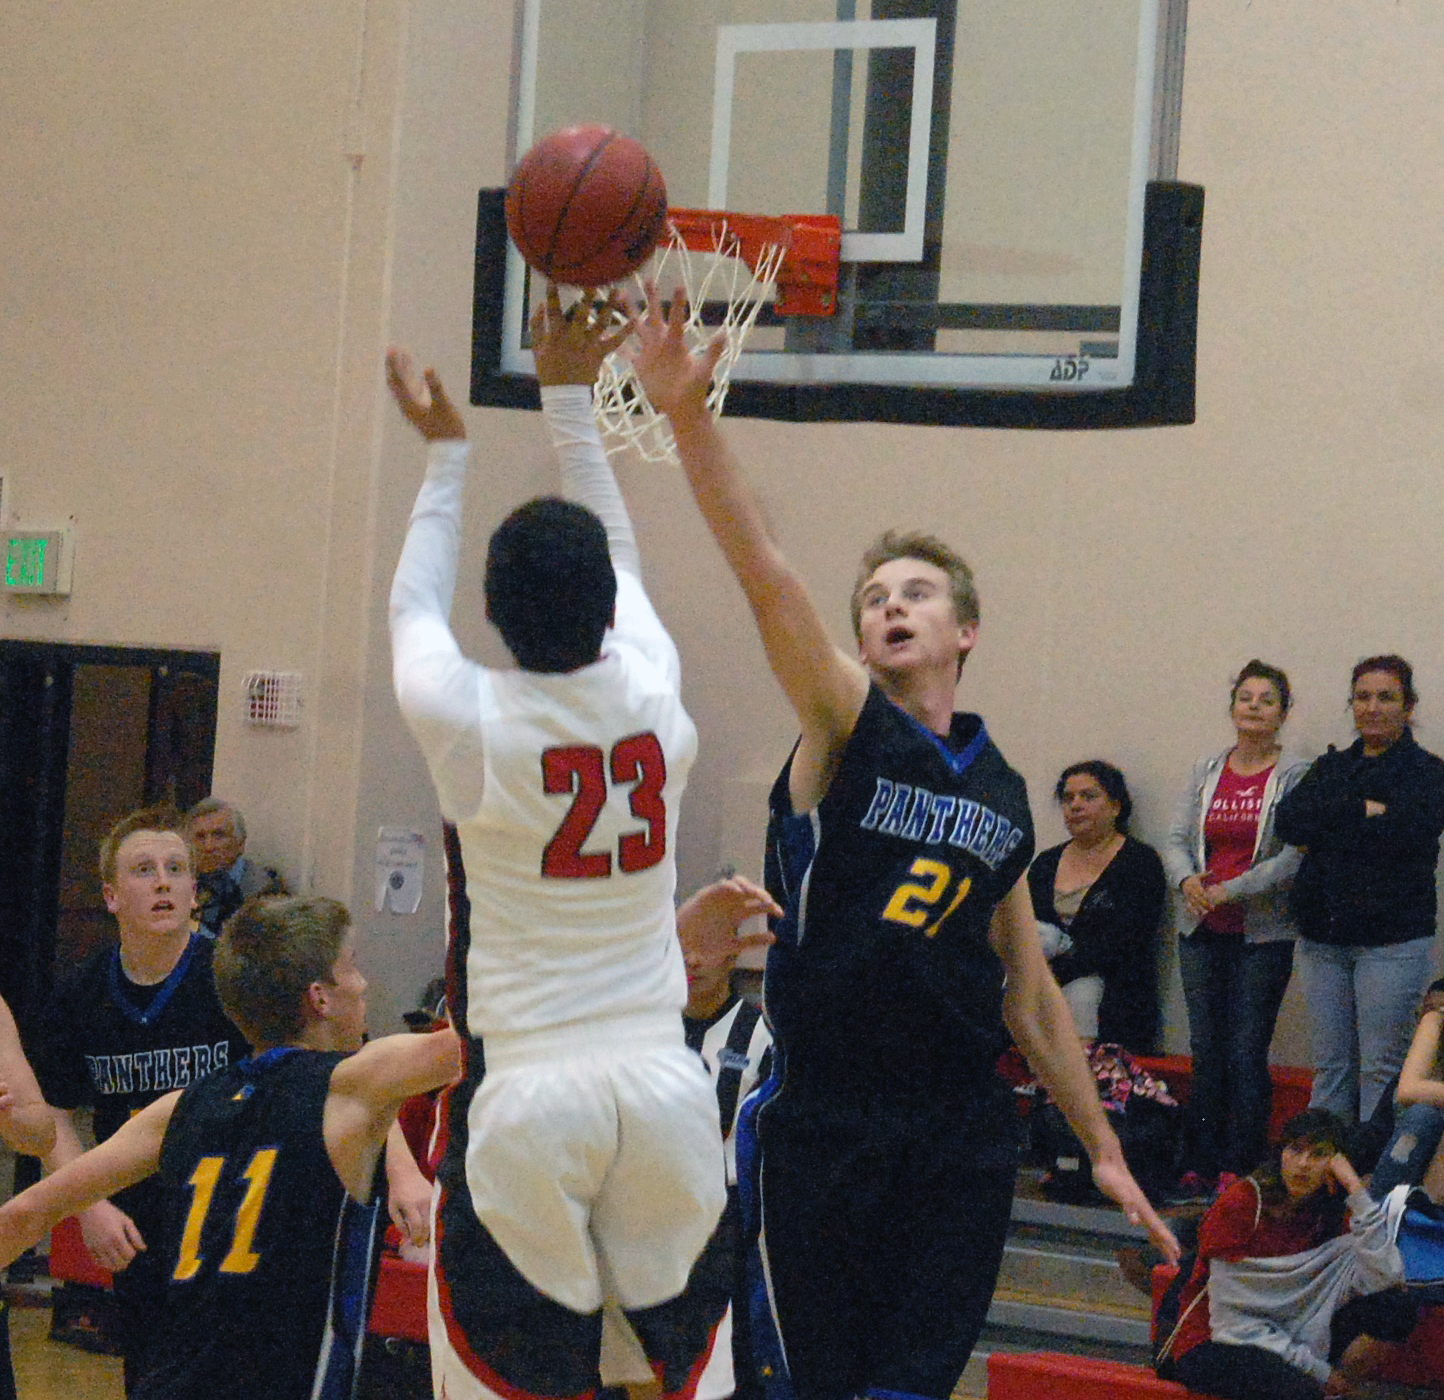 PV boys finish league play; prepare for playoffs